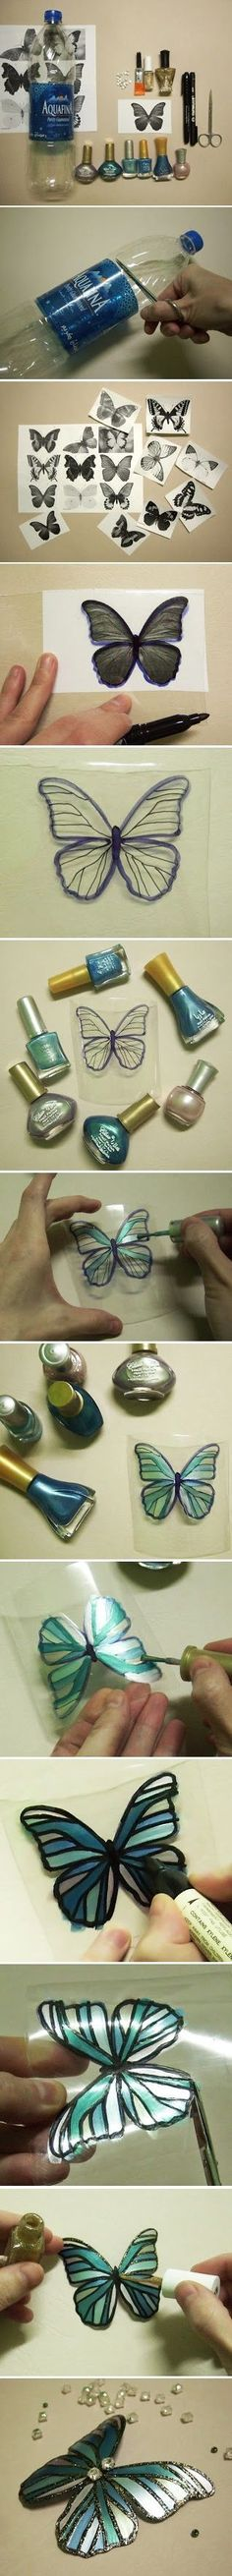 20 Amazing But Simple Recycling Ideas - Bored Art                                                                                                                                                      More